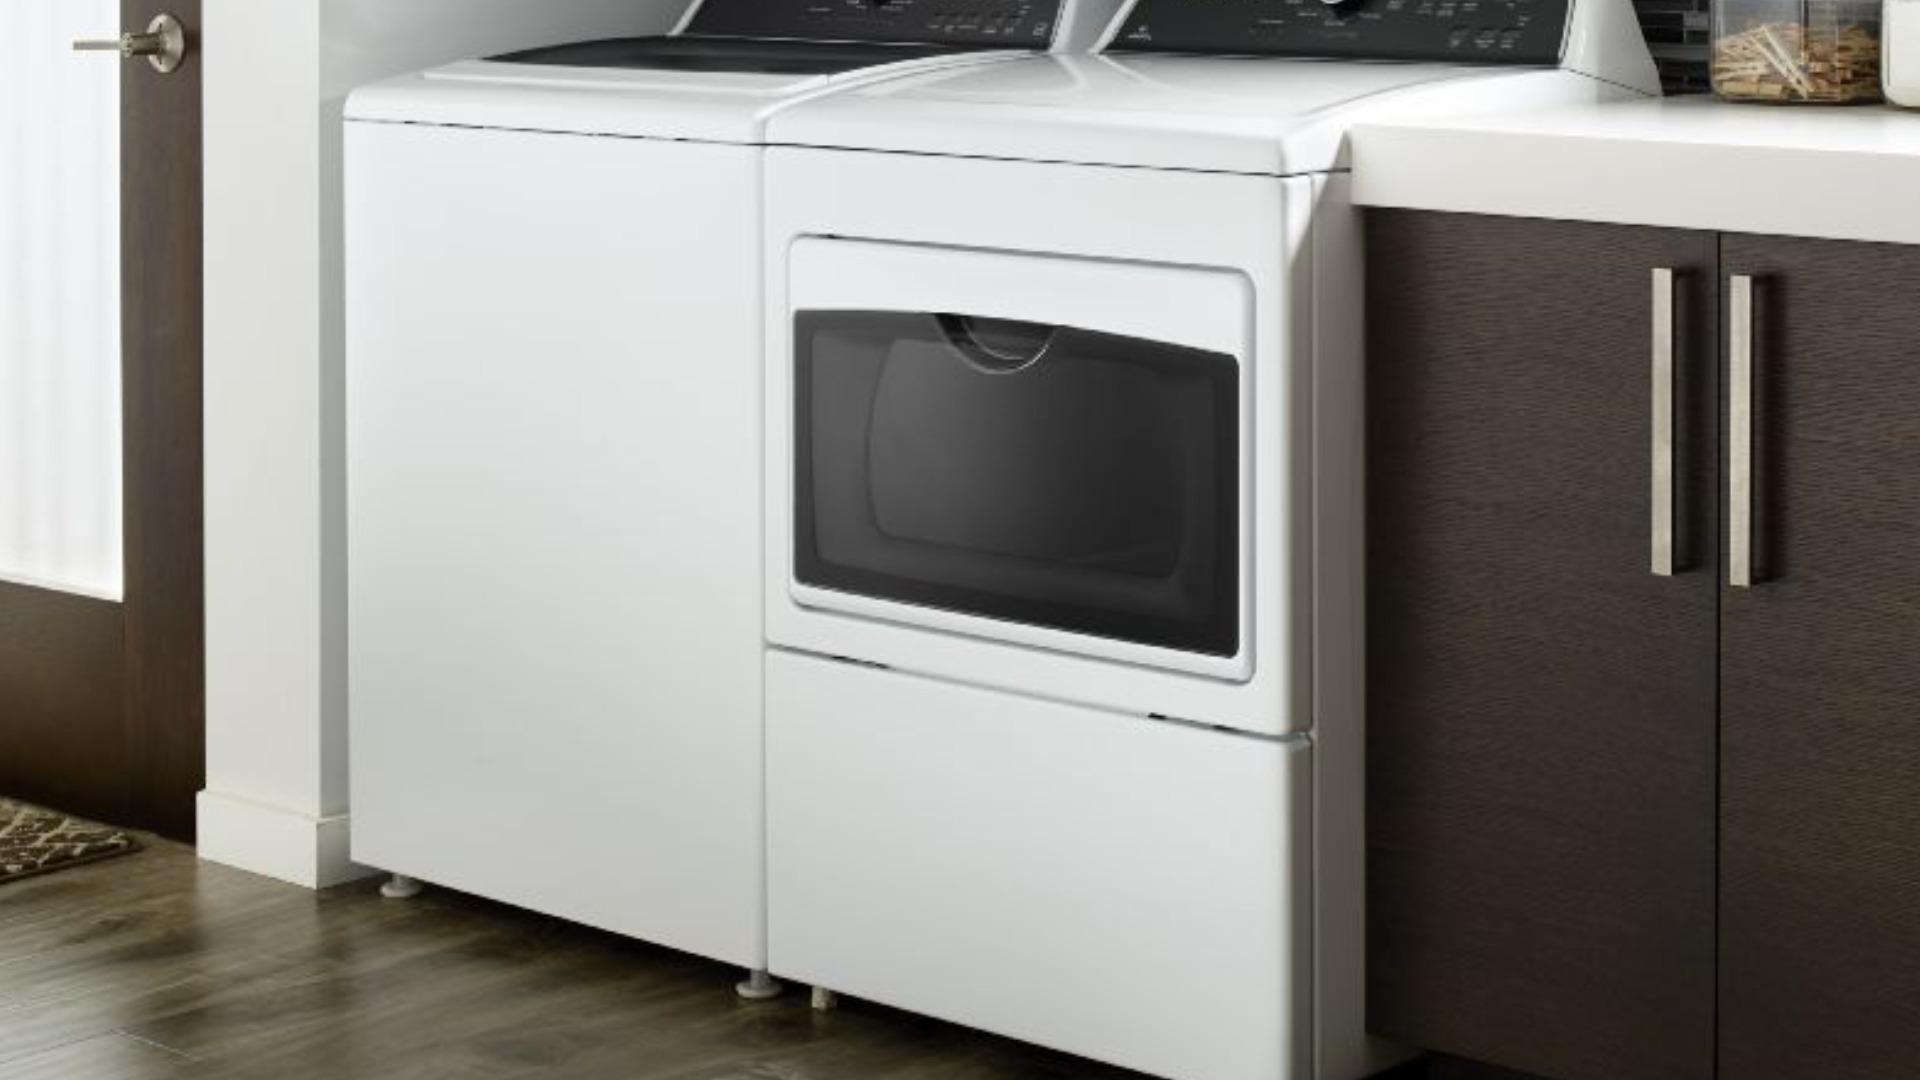 """Featured image for """"Whirlpool Dryer Not Heating? 7 Common Causes"""""""